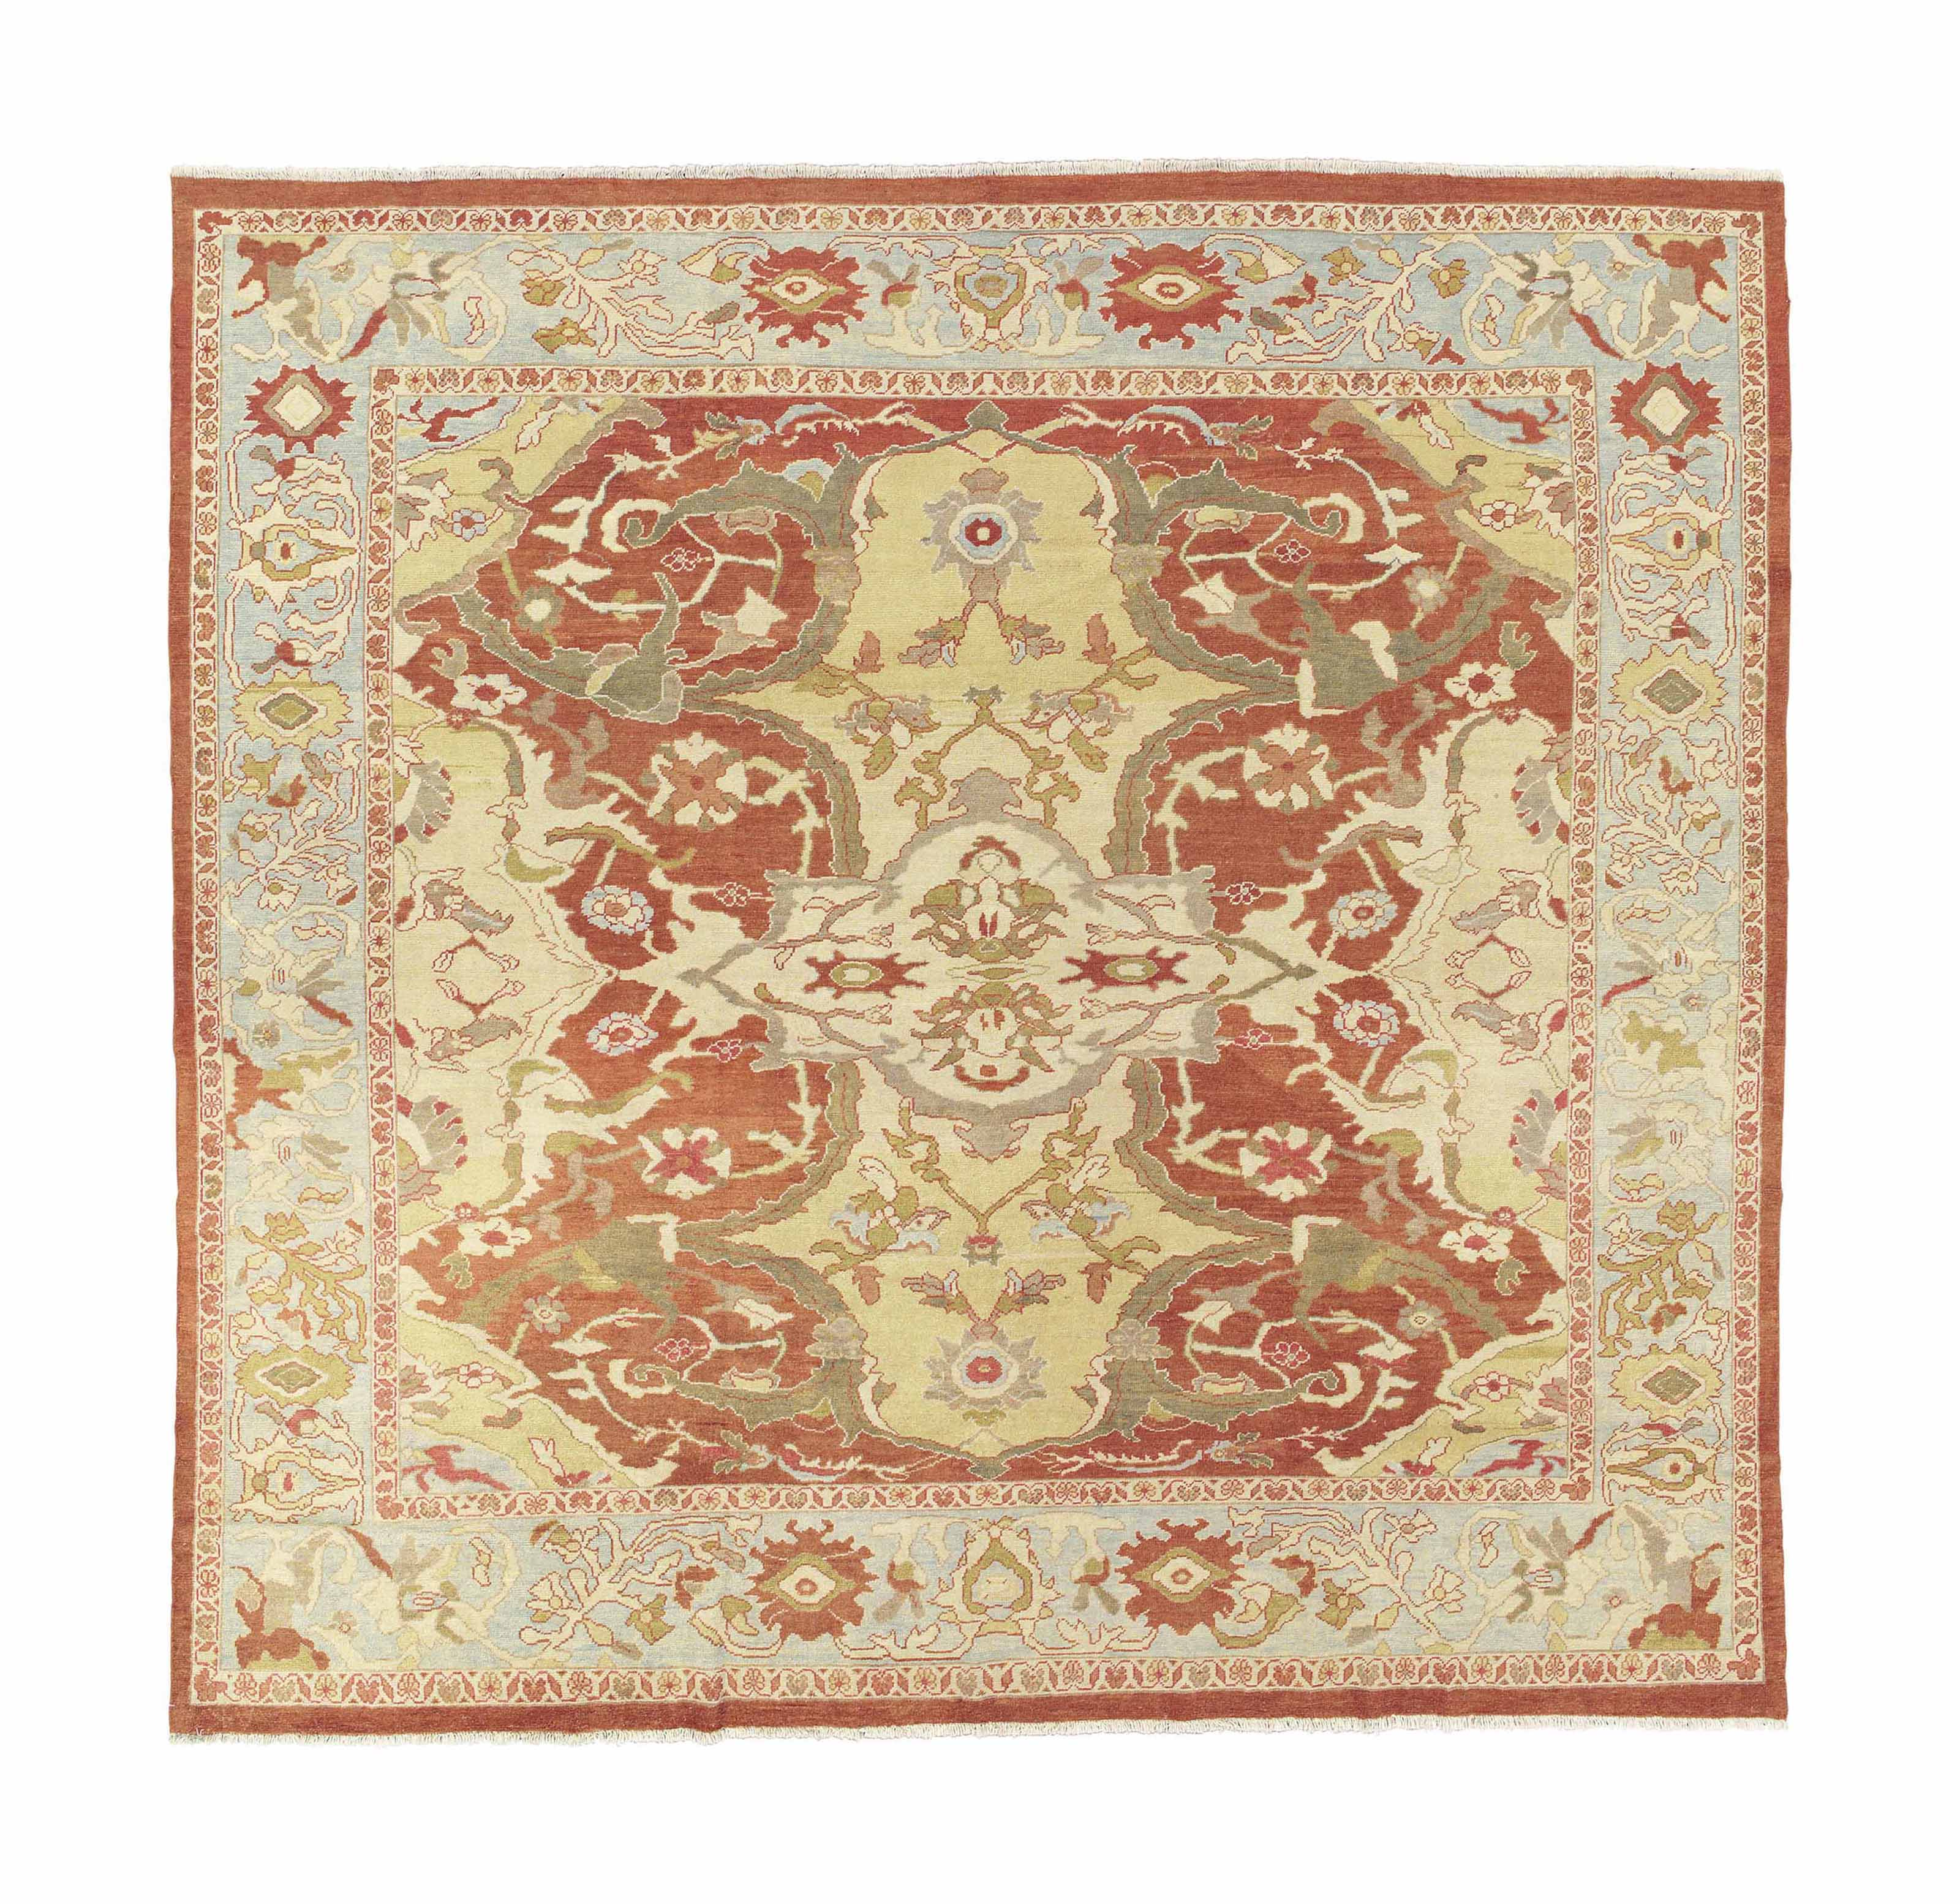 A NORTH WEST PERSIAN CARPET OF